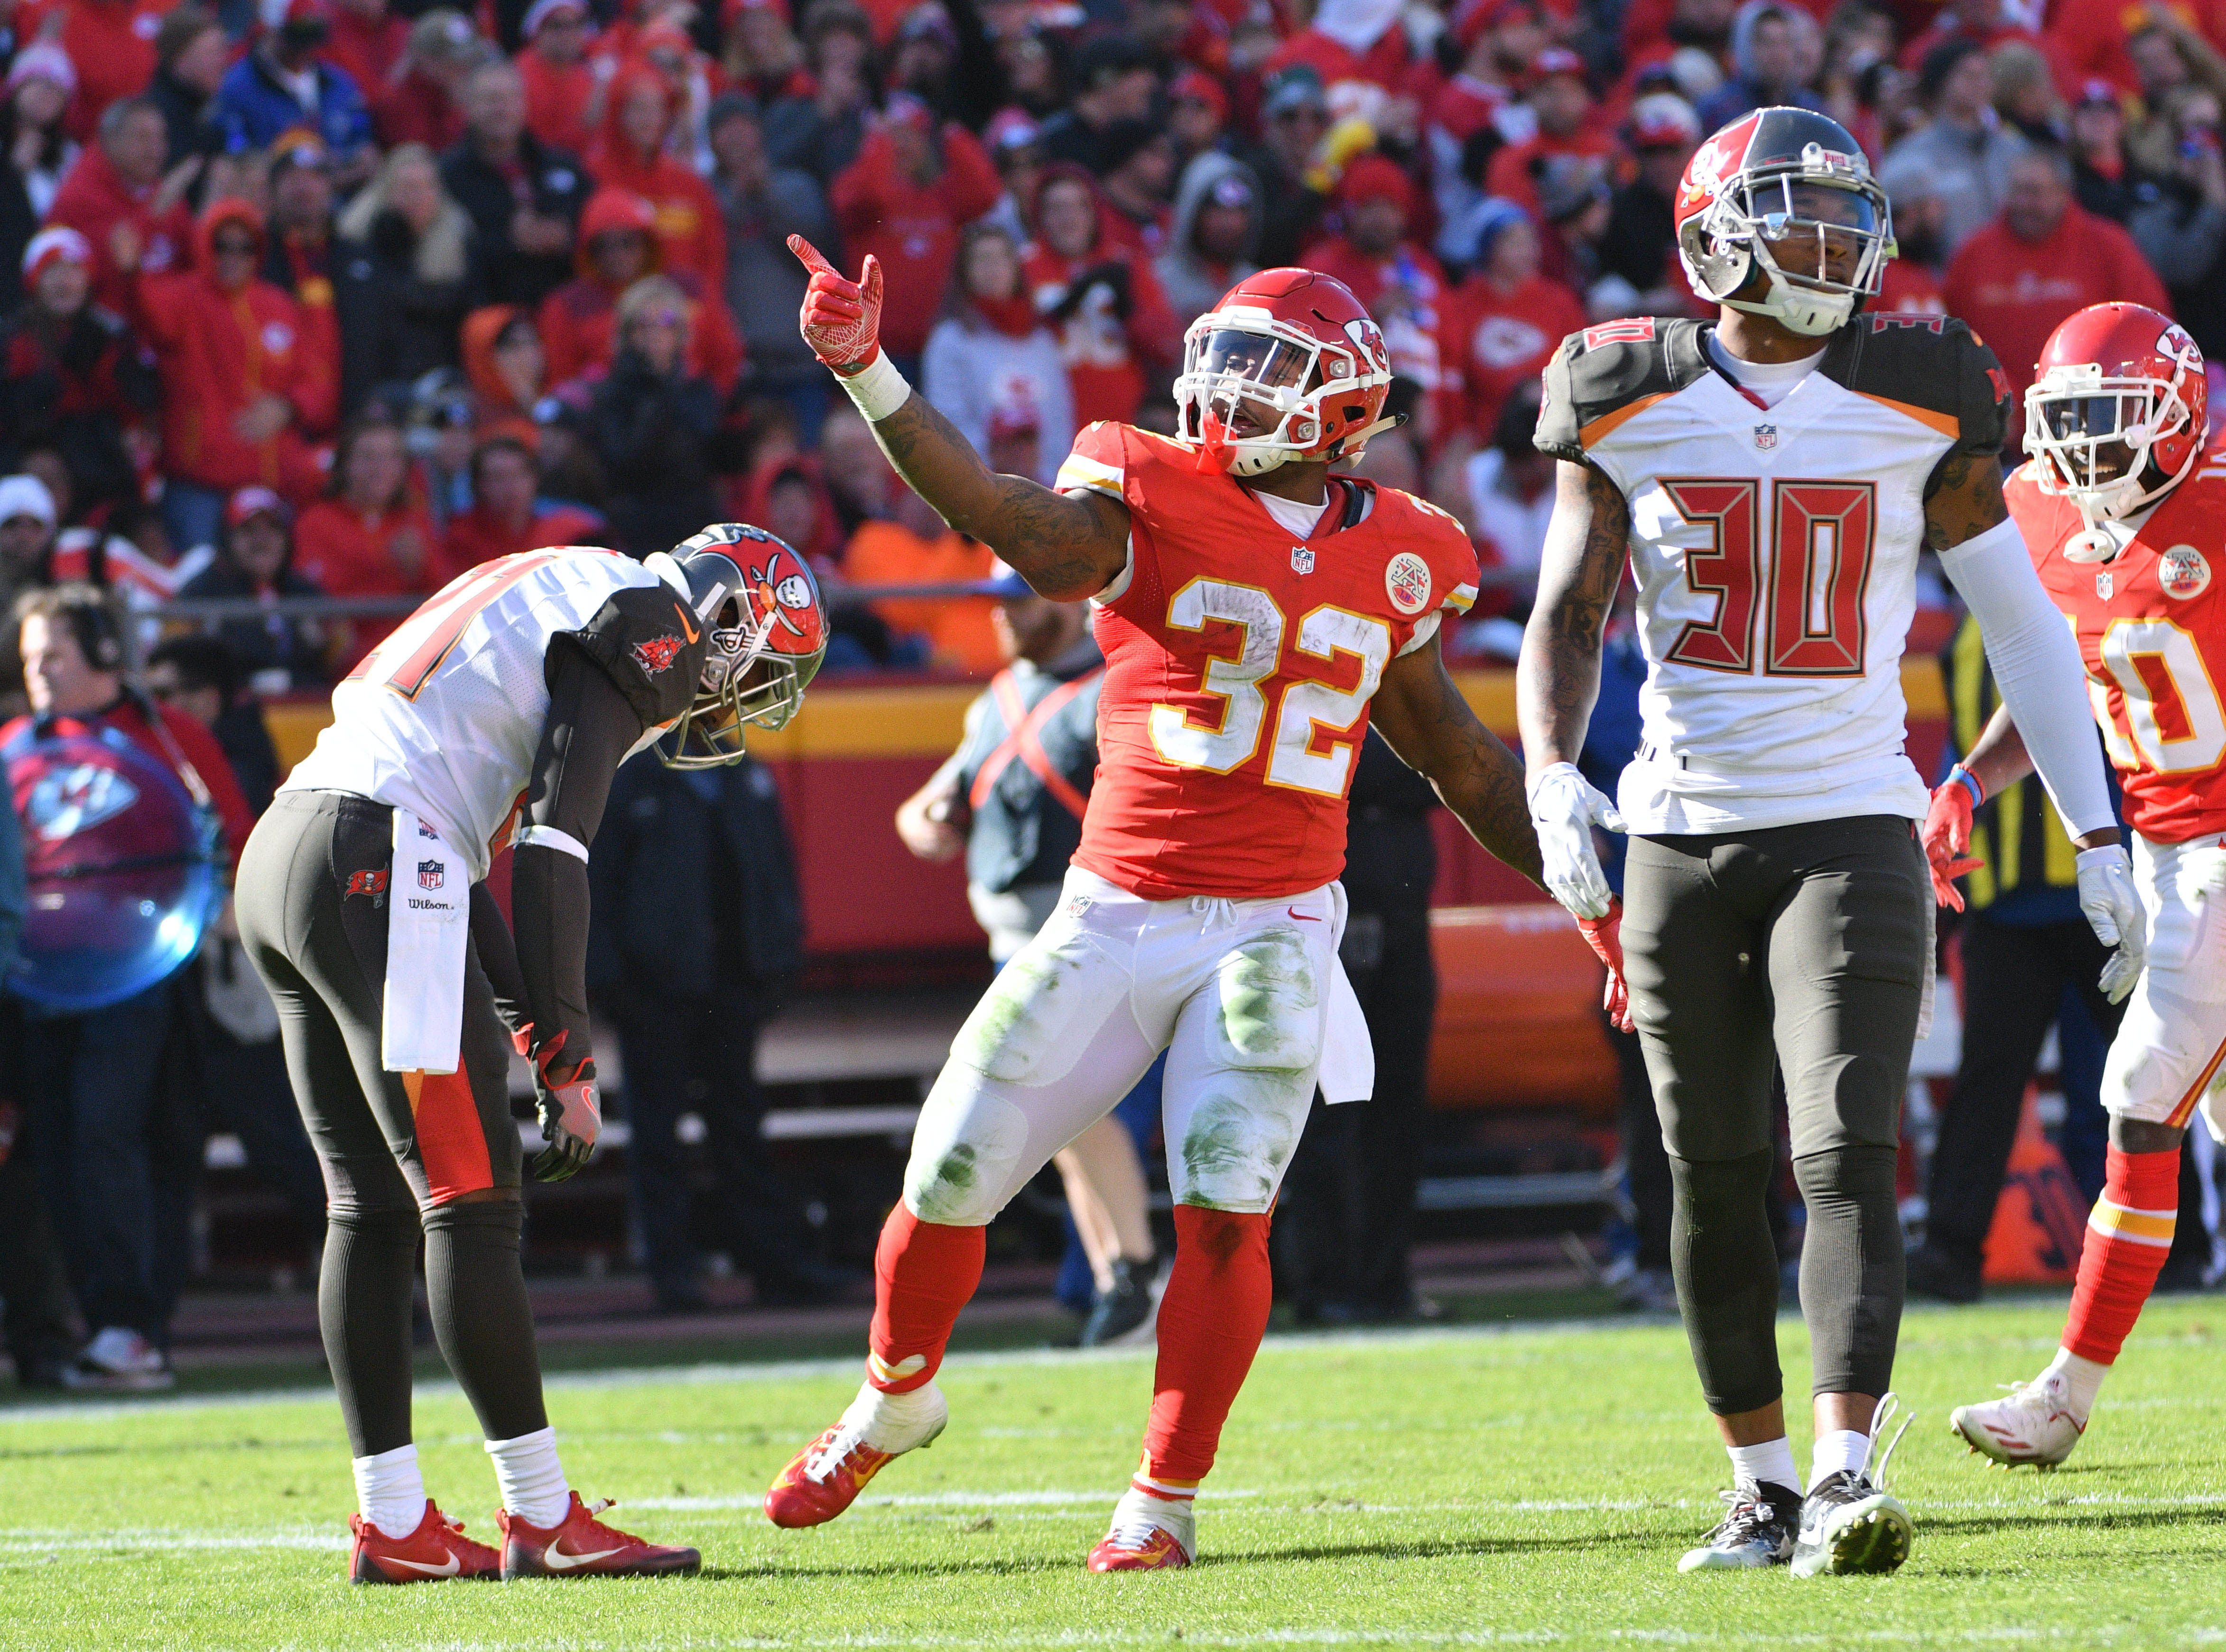 Chiefs: NFL Schedule Release Day! Here Are The Chiefs Opponents